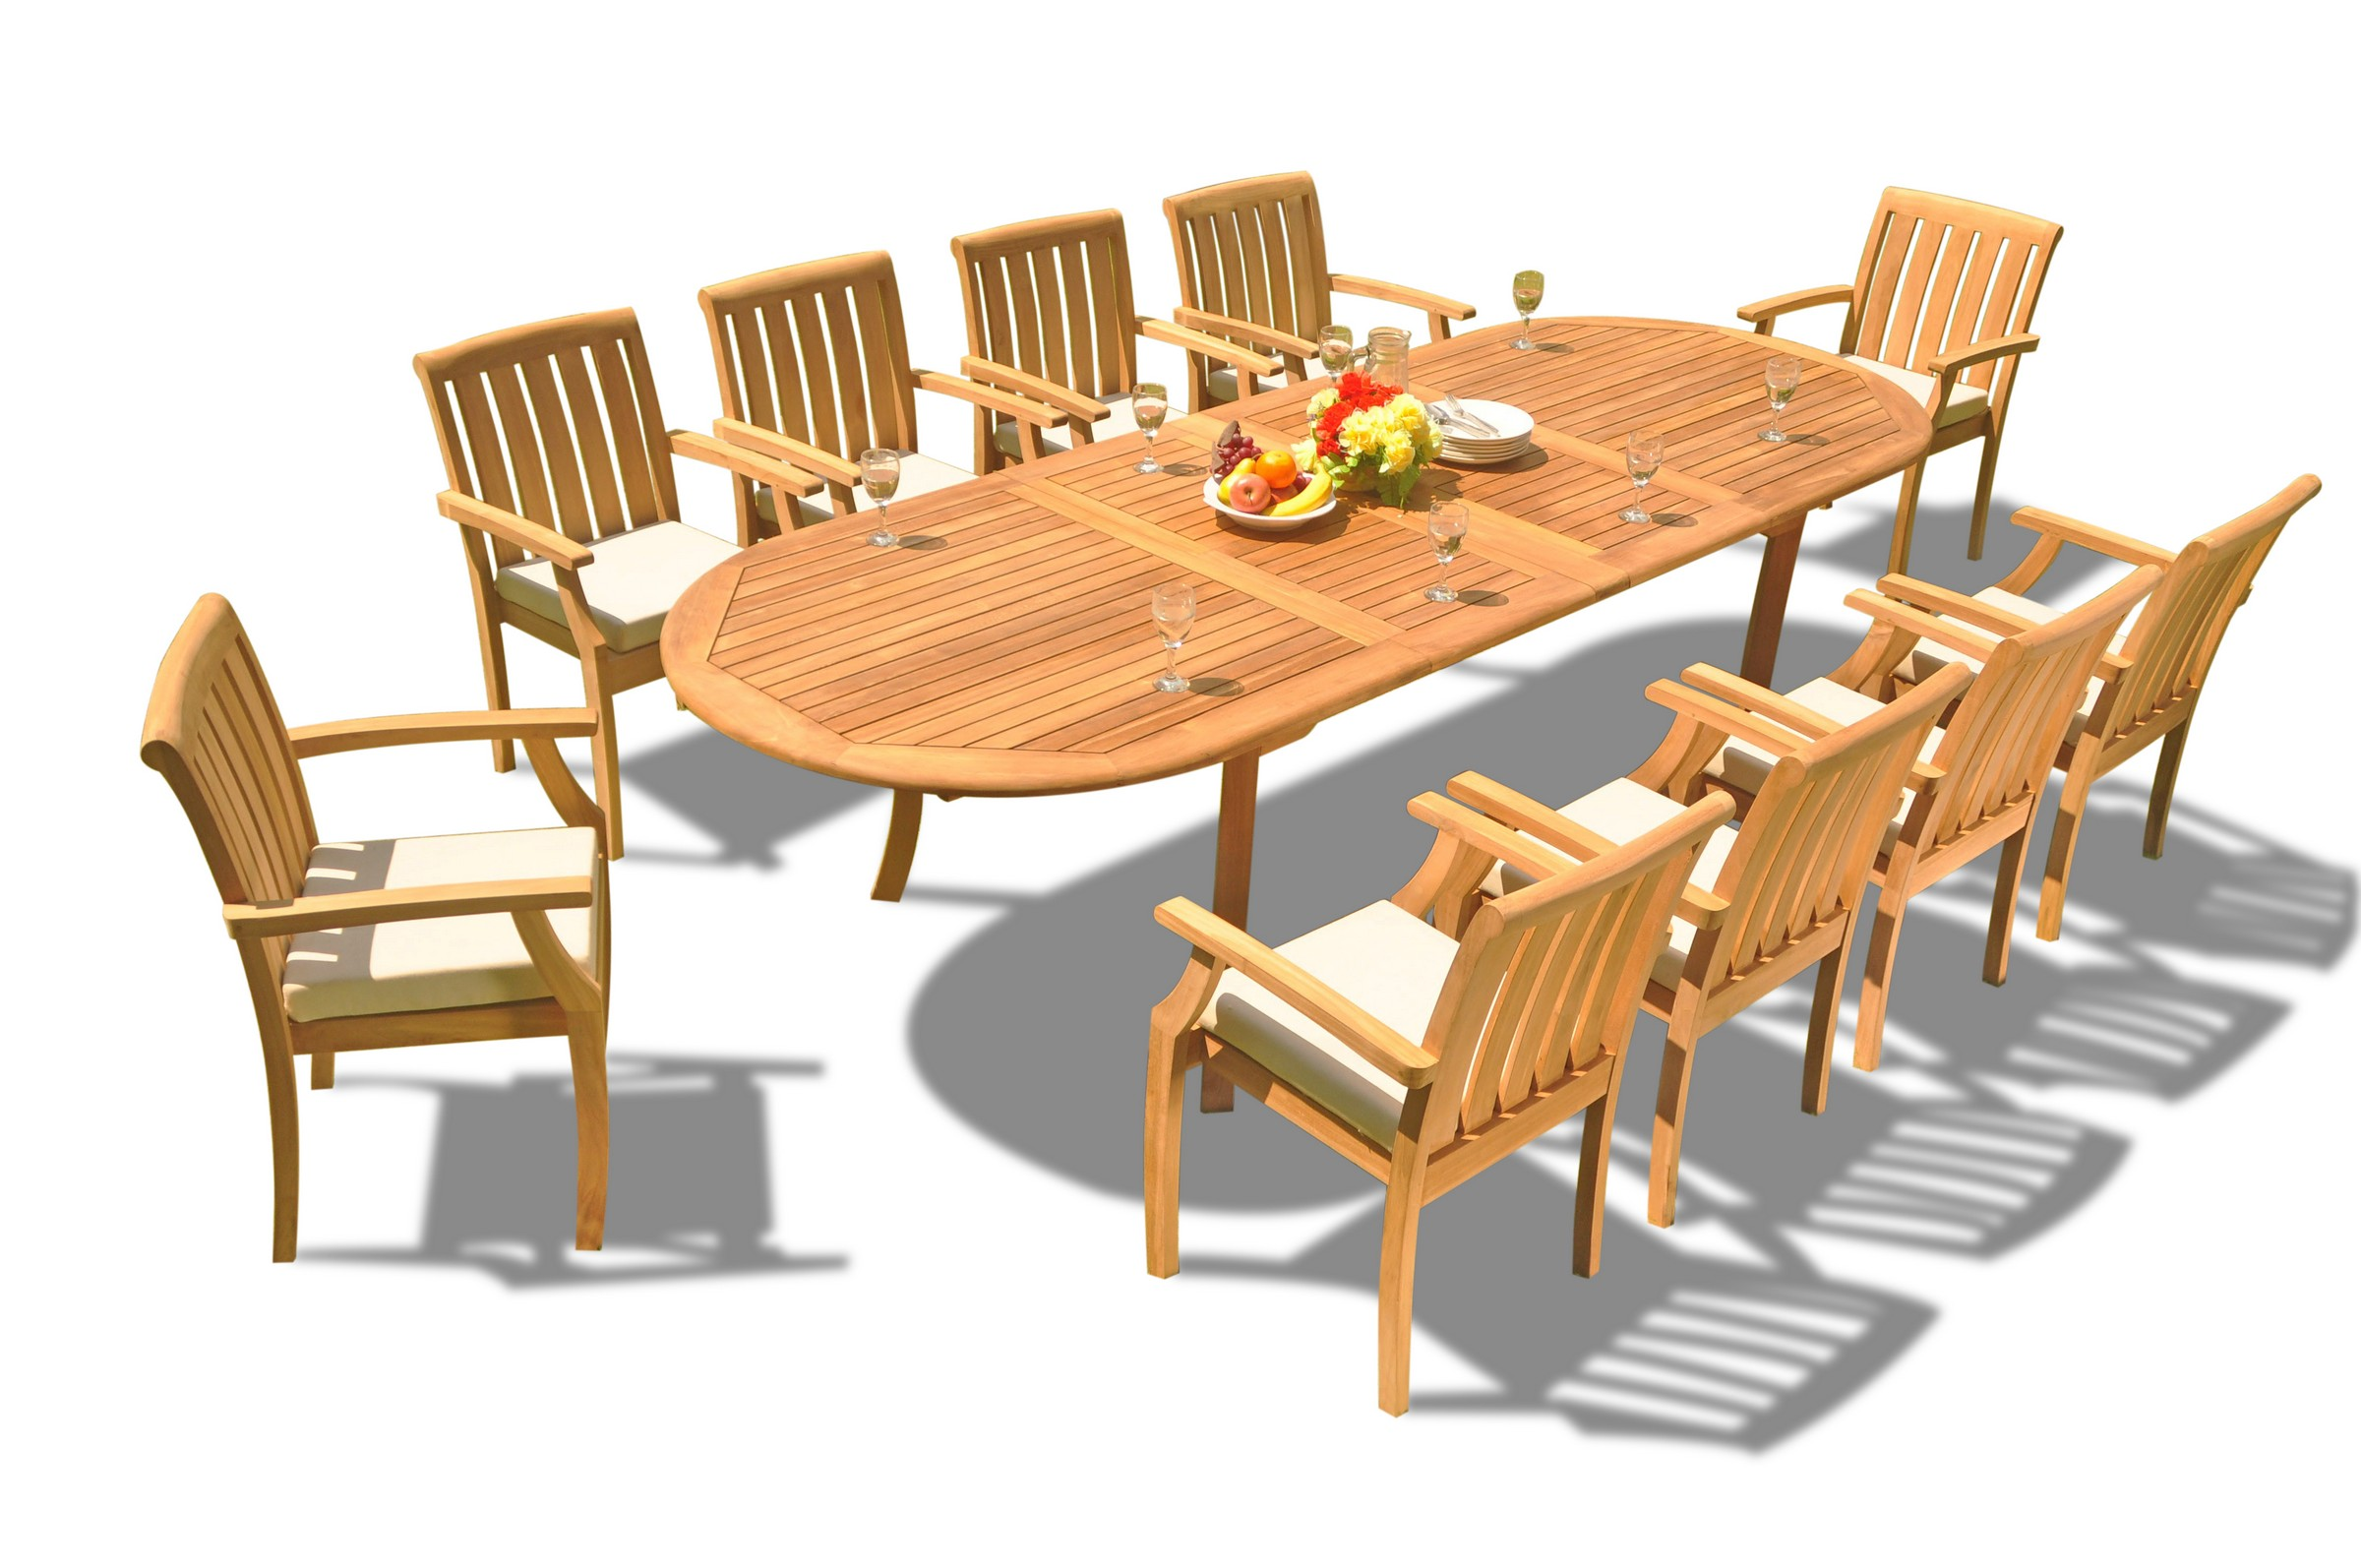 Admirable Teak Dining Set 10 Seater 11 Pc 117 Double Extensions Oval Dining Table 10 Somerset Stacking Arm Captain Chairs Outdoor Patio Grade A Teak Wood Home Interior And Landscaping Palasignezvosmurscom